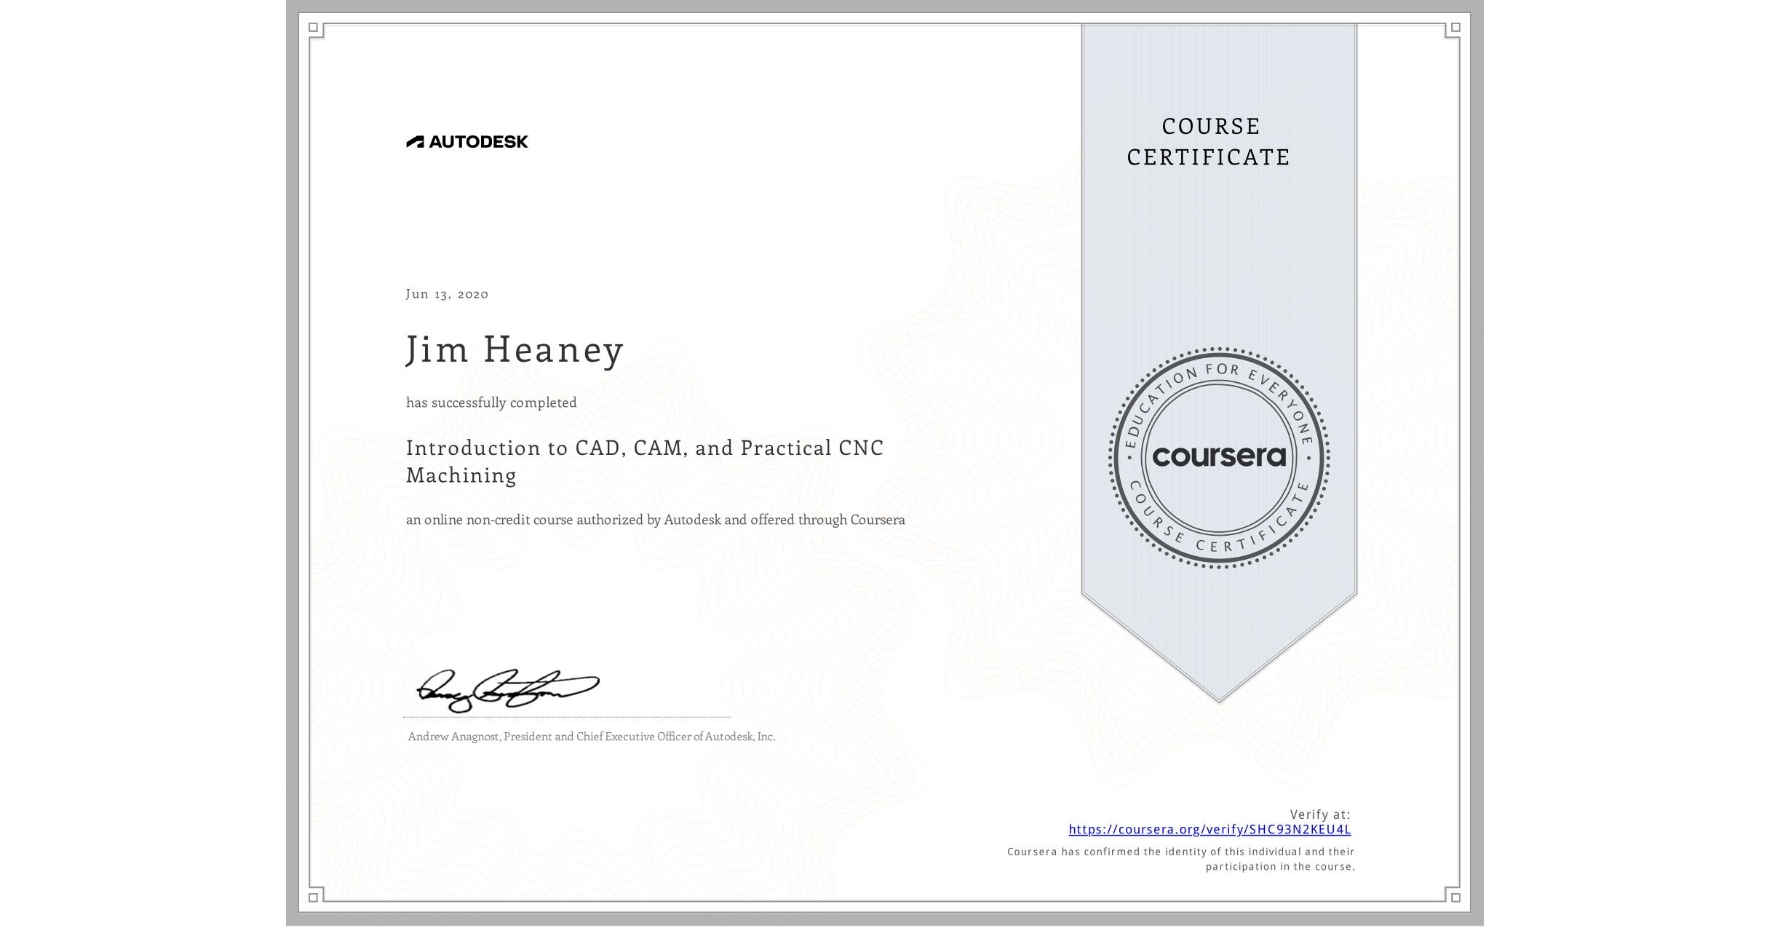 View certificate for Jim Heaney, Introduction to CAD, CAM, and Practical CNC Machining, an online non-credit course authorized by Autodesk and offered through Coursera